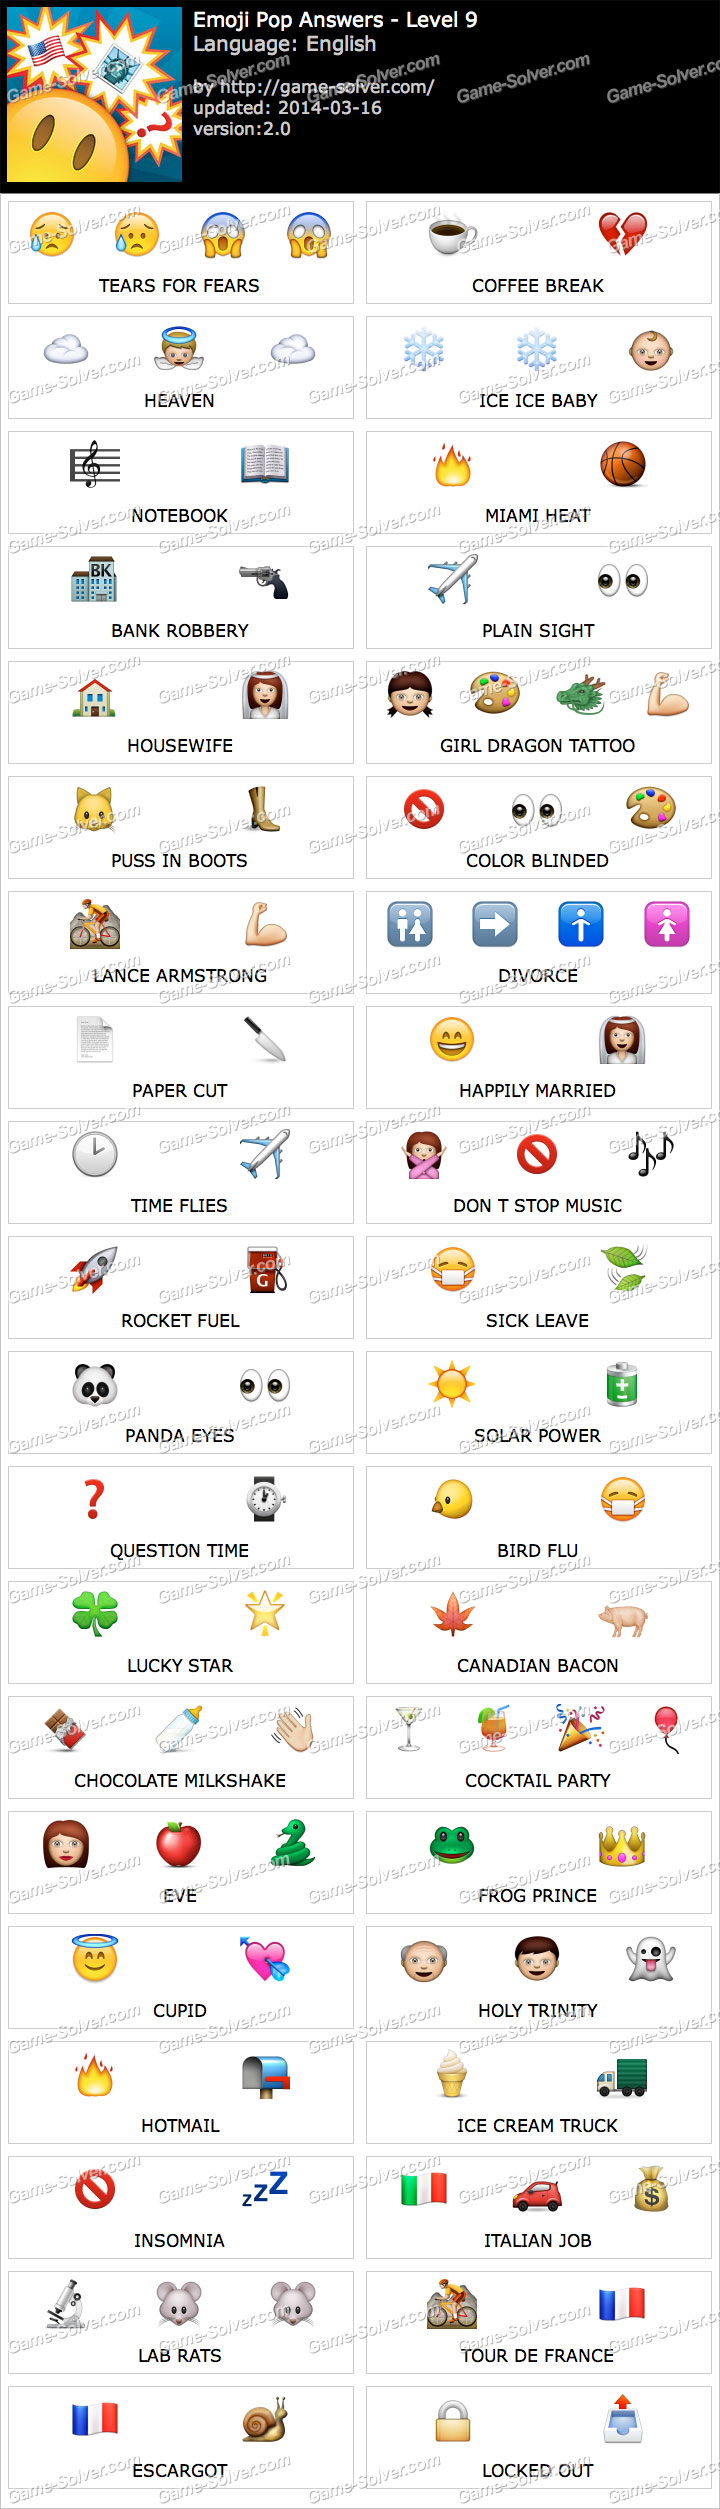 Emoji Quiz Answers - UPDATED!